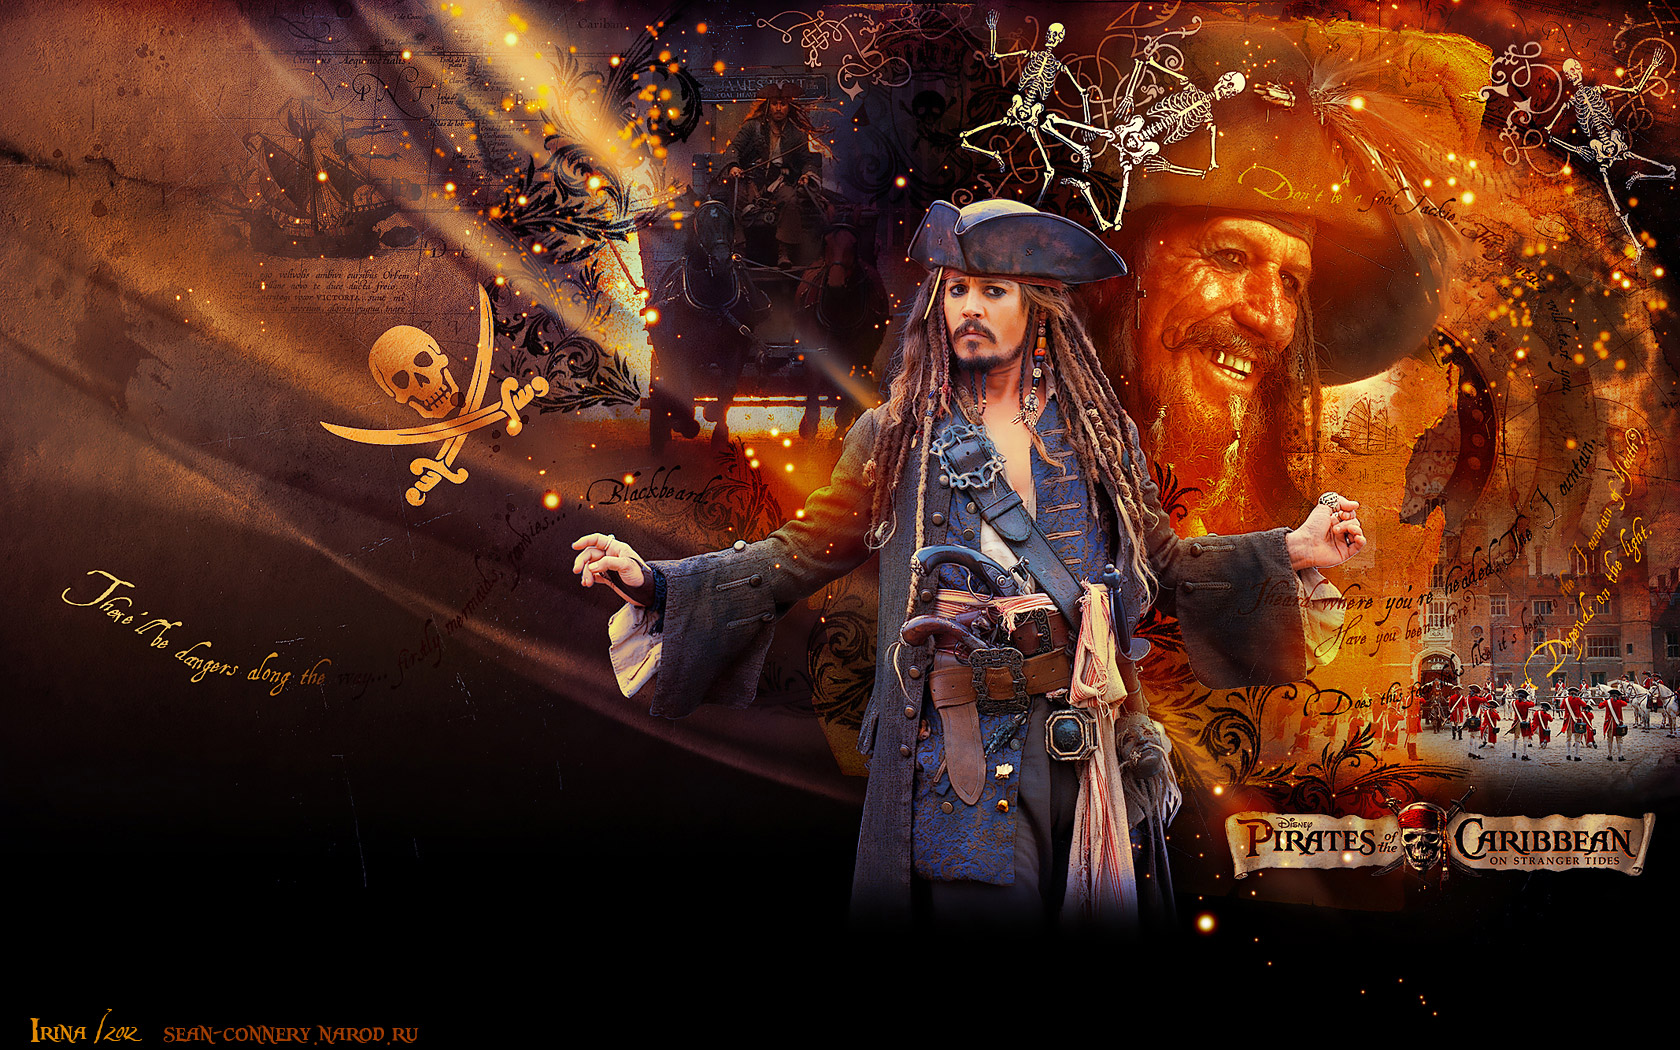 Pirates Of The Caribean Wallpaper: Pirates Of The Caribbean Wallpaper